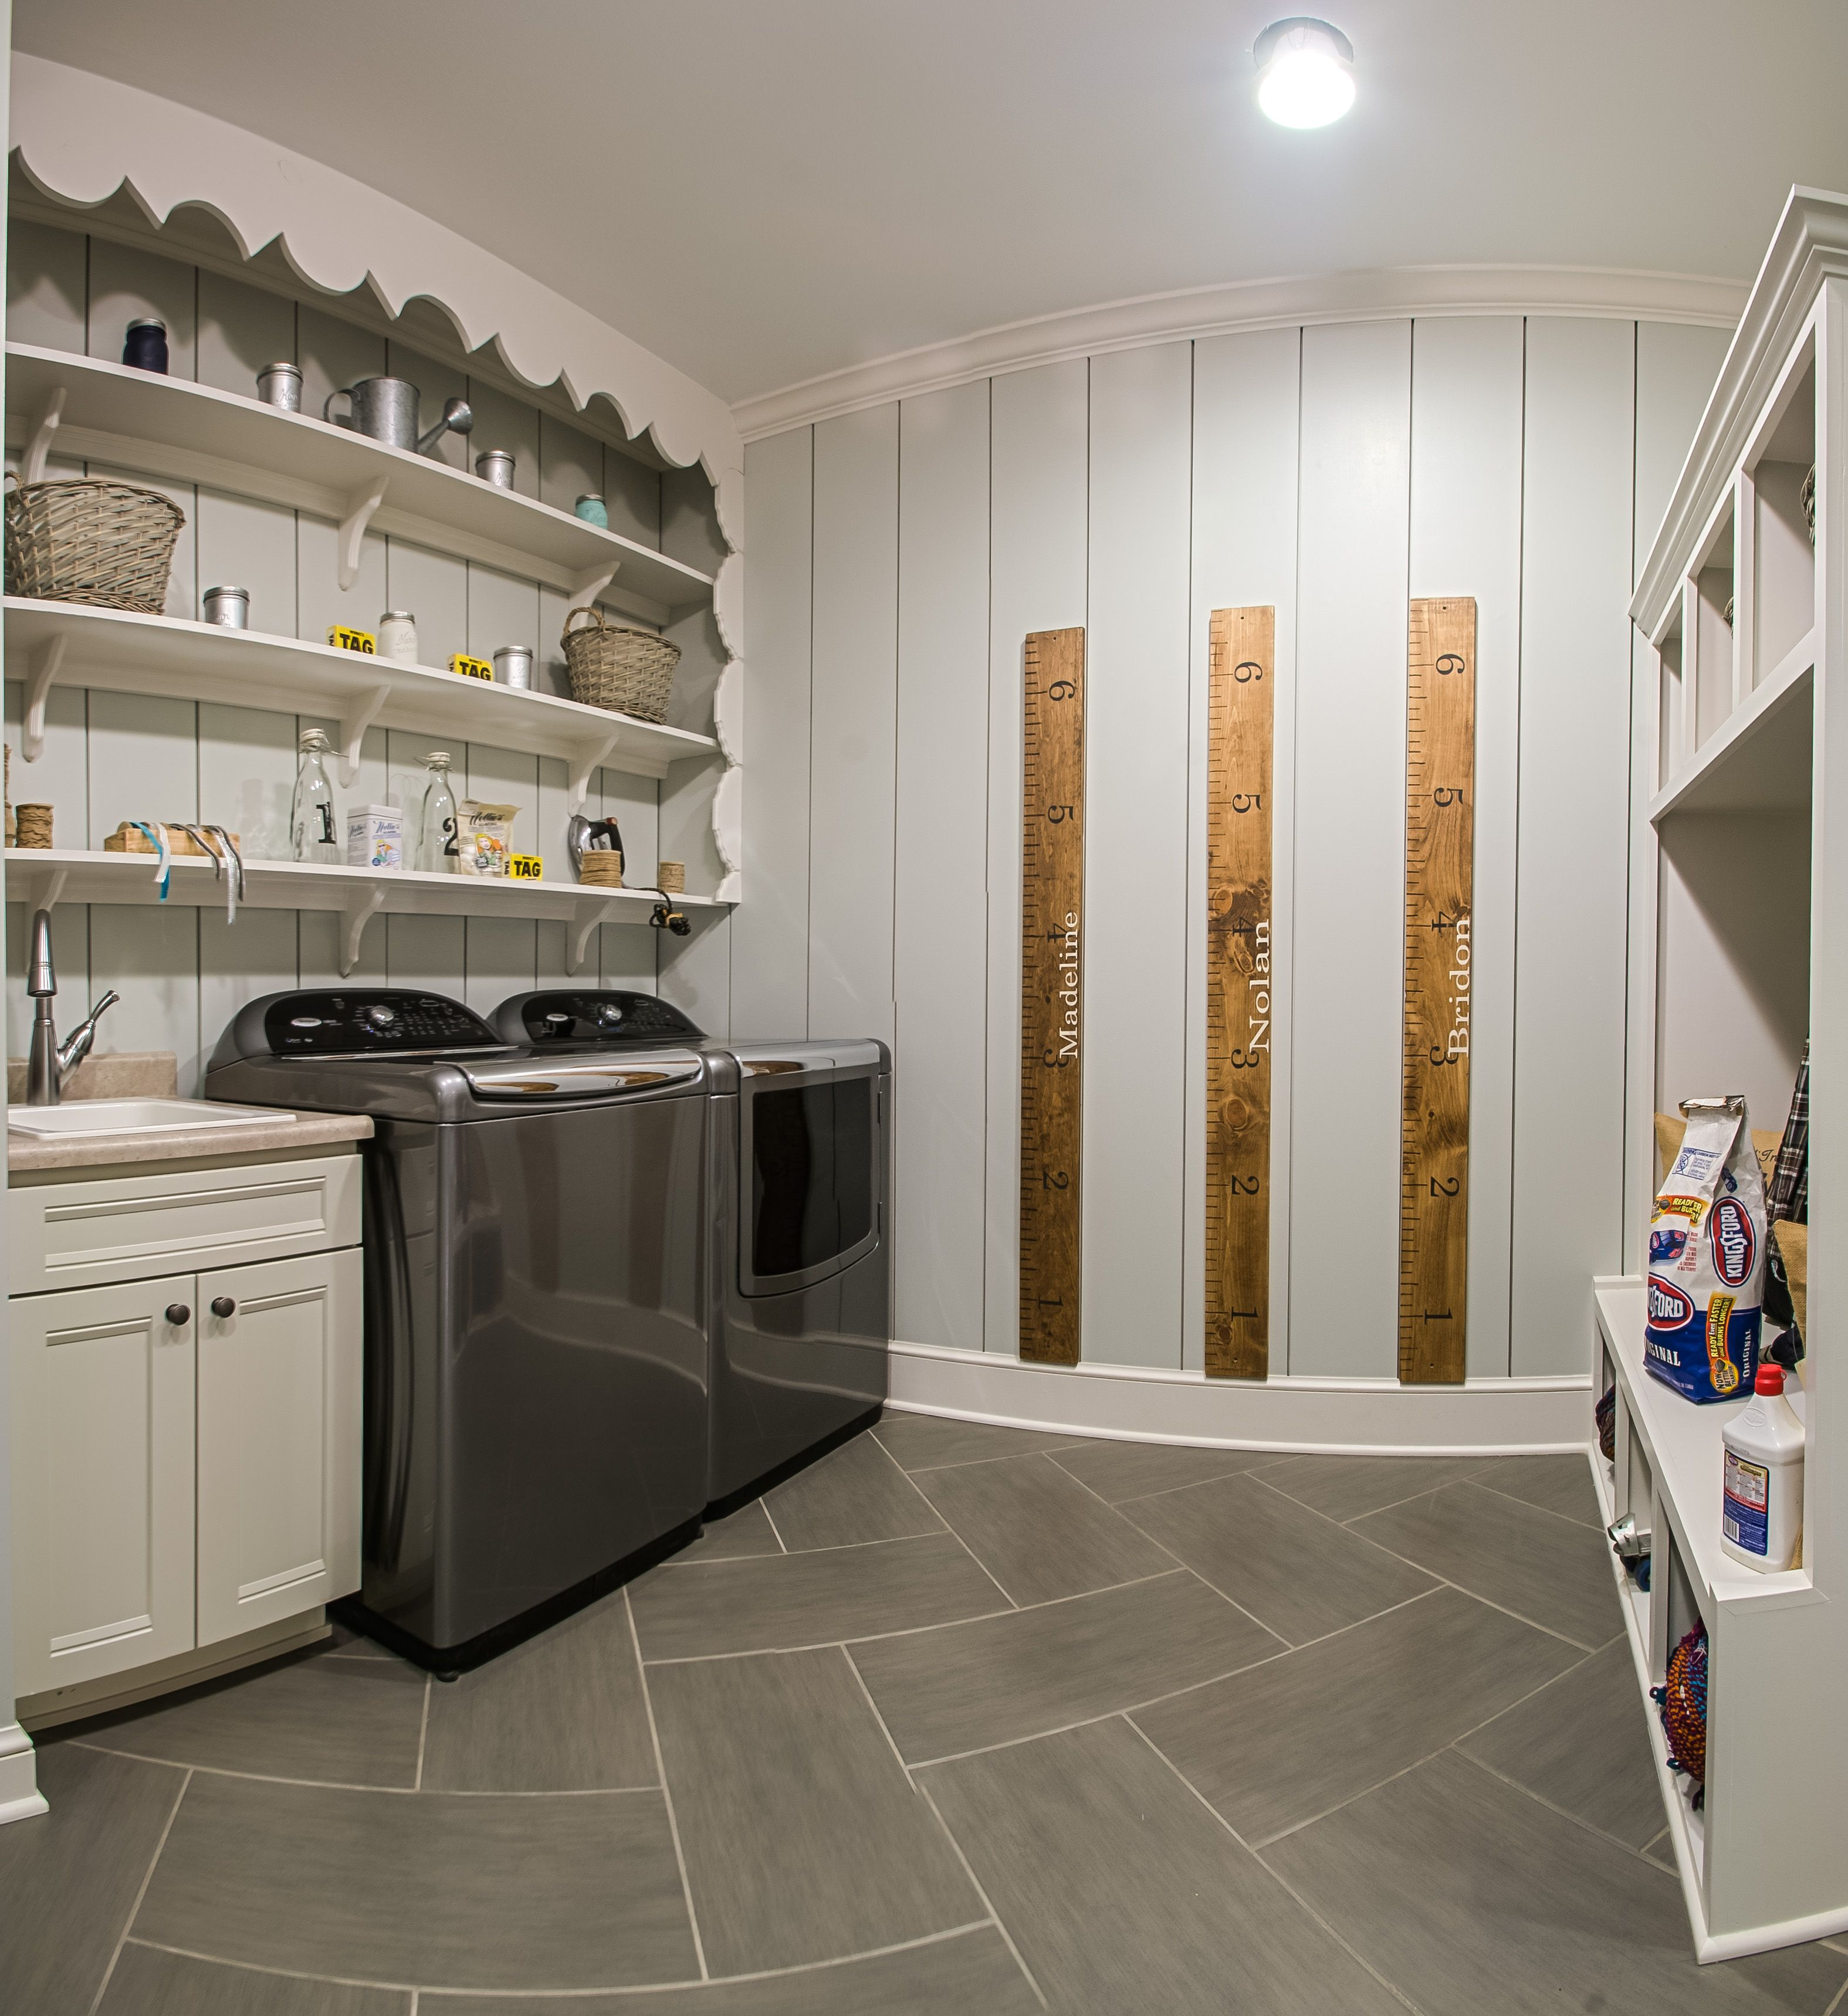 Laundry Room with plenty of room for storage